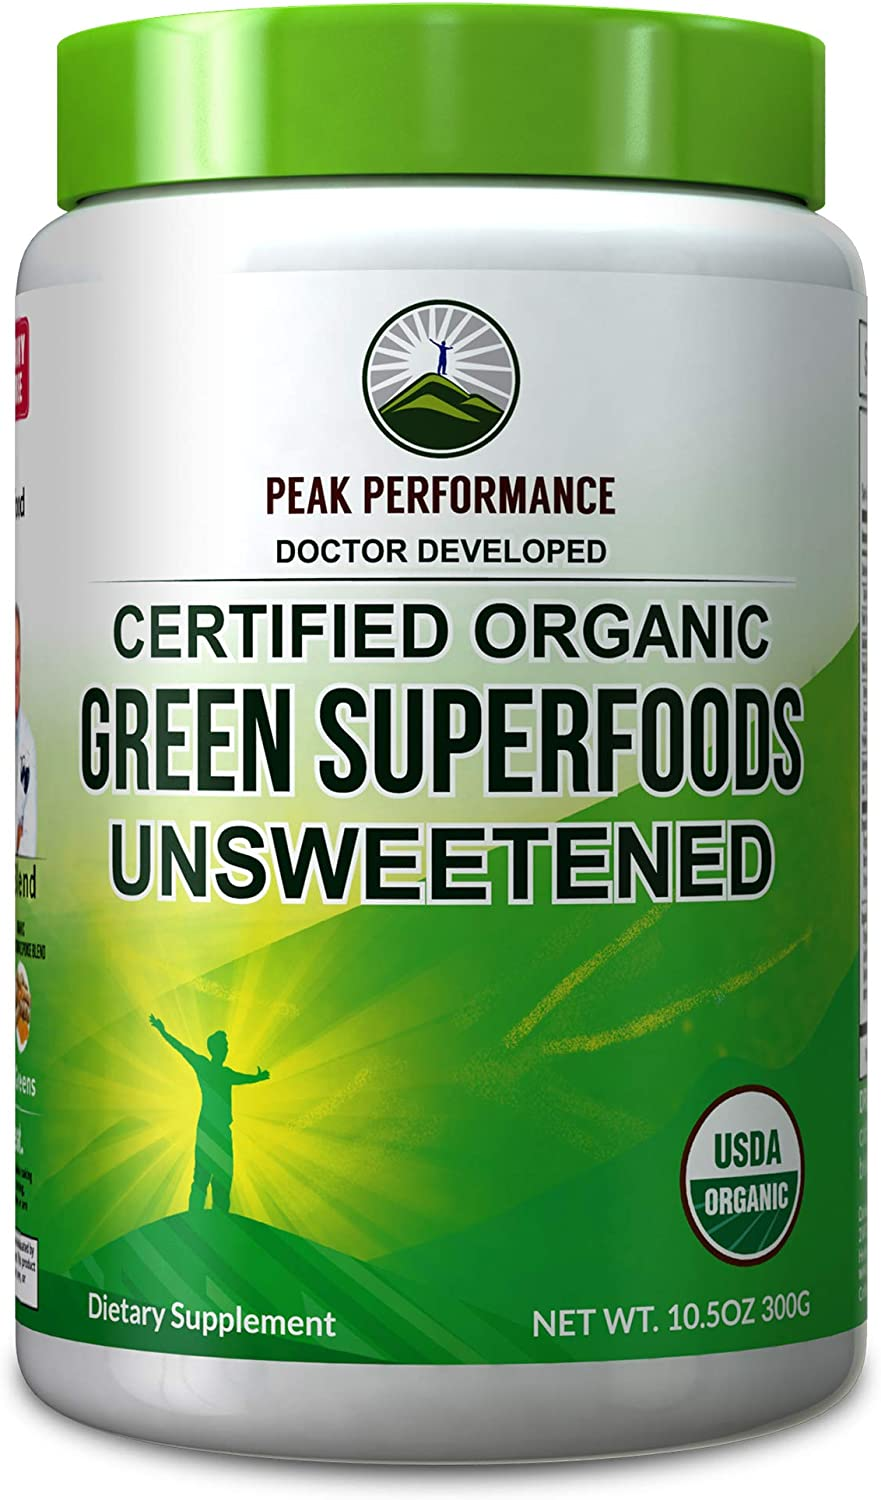 Peak Performance Organic Greens Unsweetened Superfood Powder. Unflavored Green Juice Vegan Super Food with 25+ All Natural Ingredients for Max Energy and Detox. Spirulina, Spinach, Kale, Probiotics